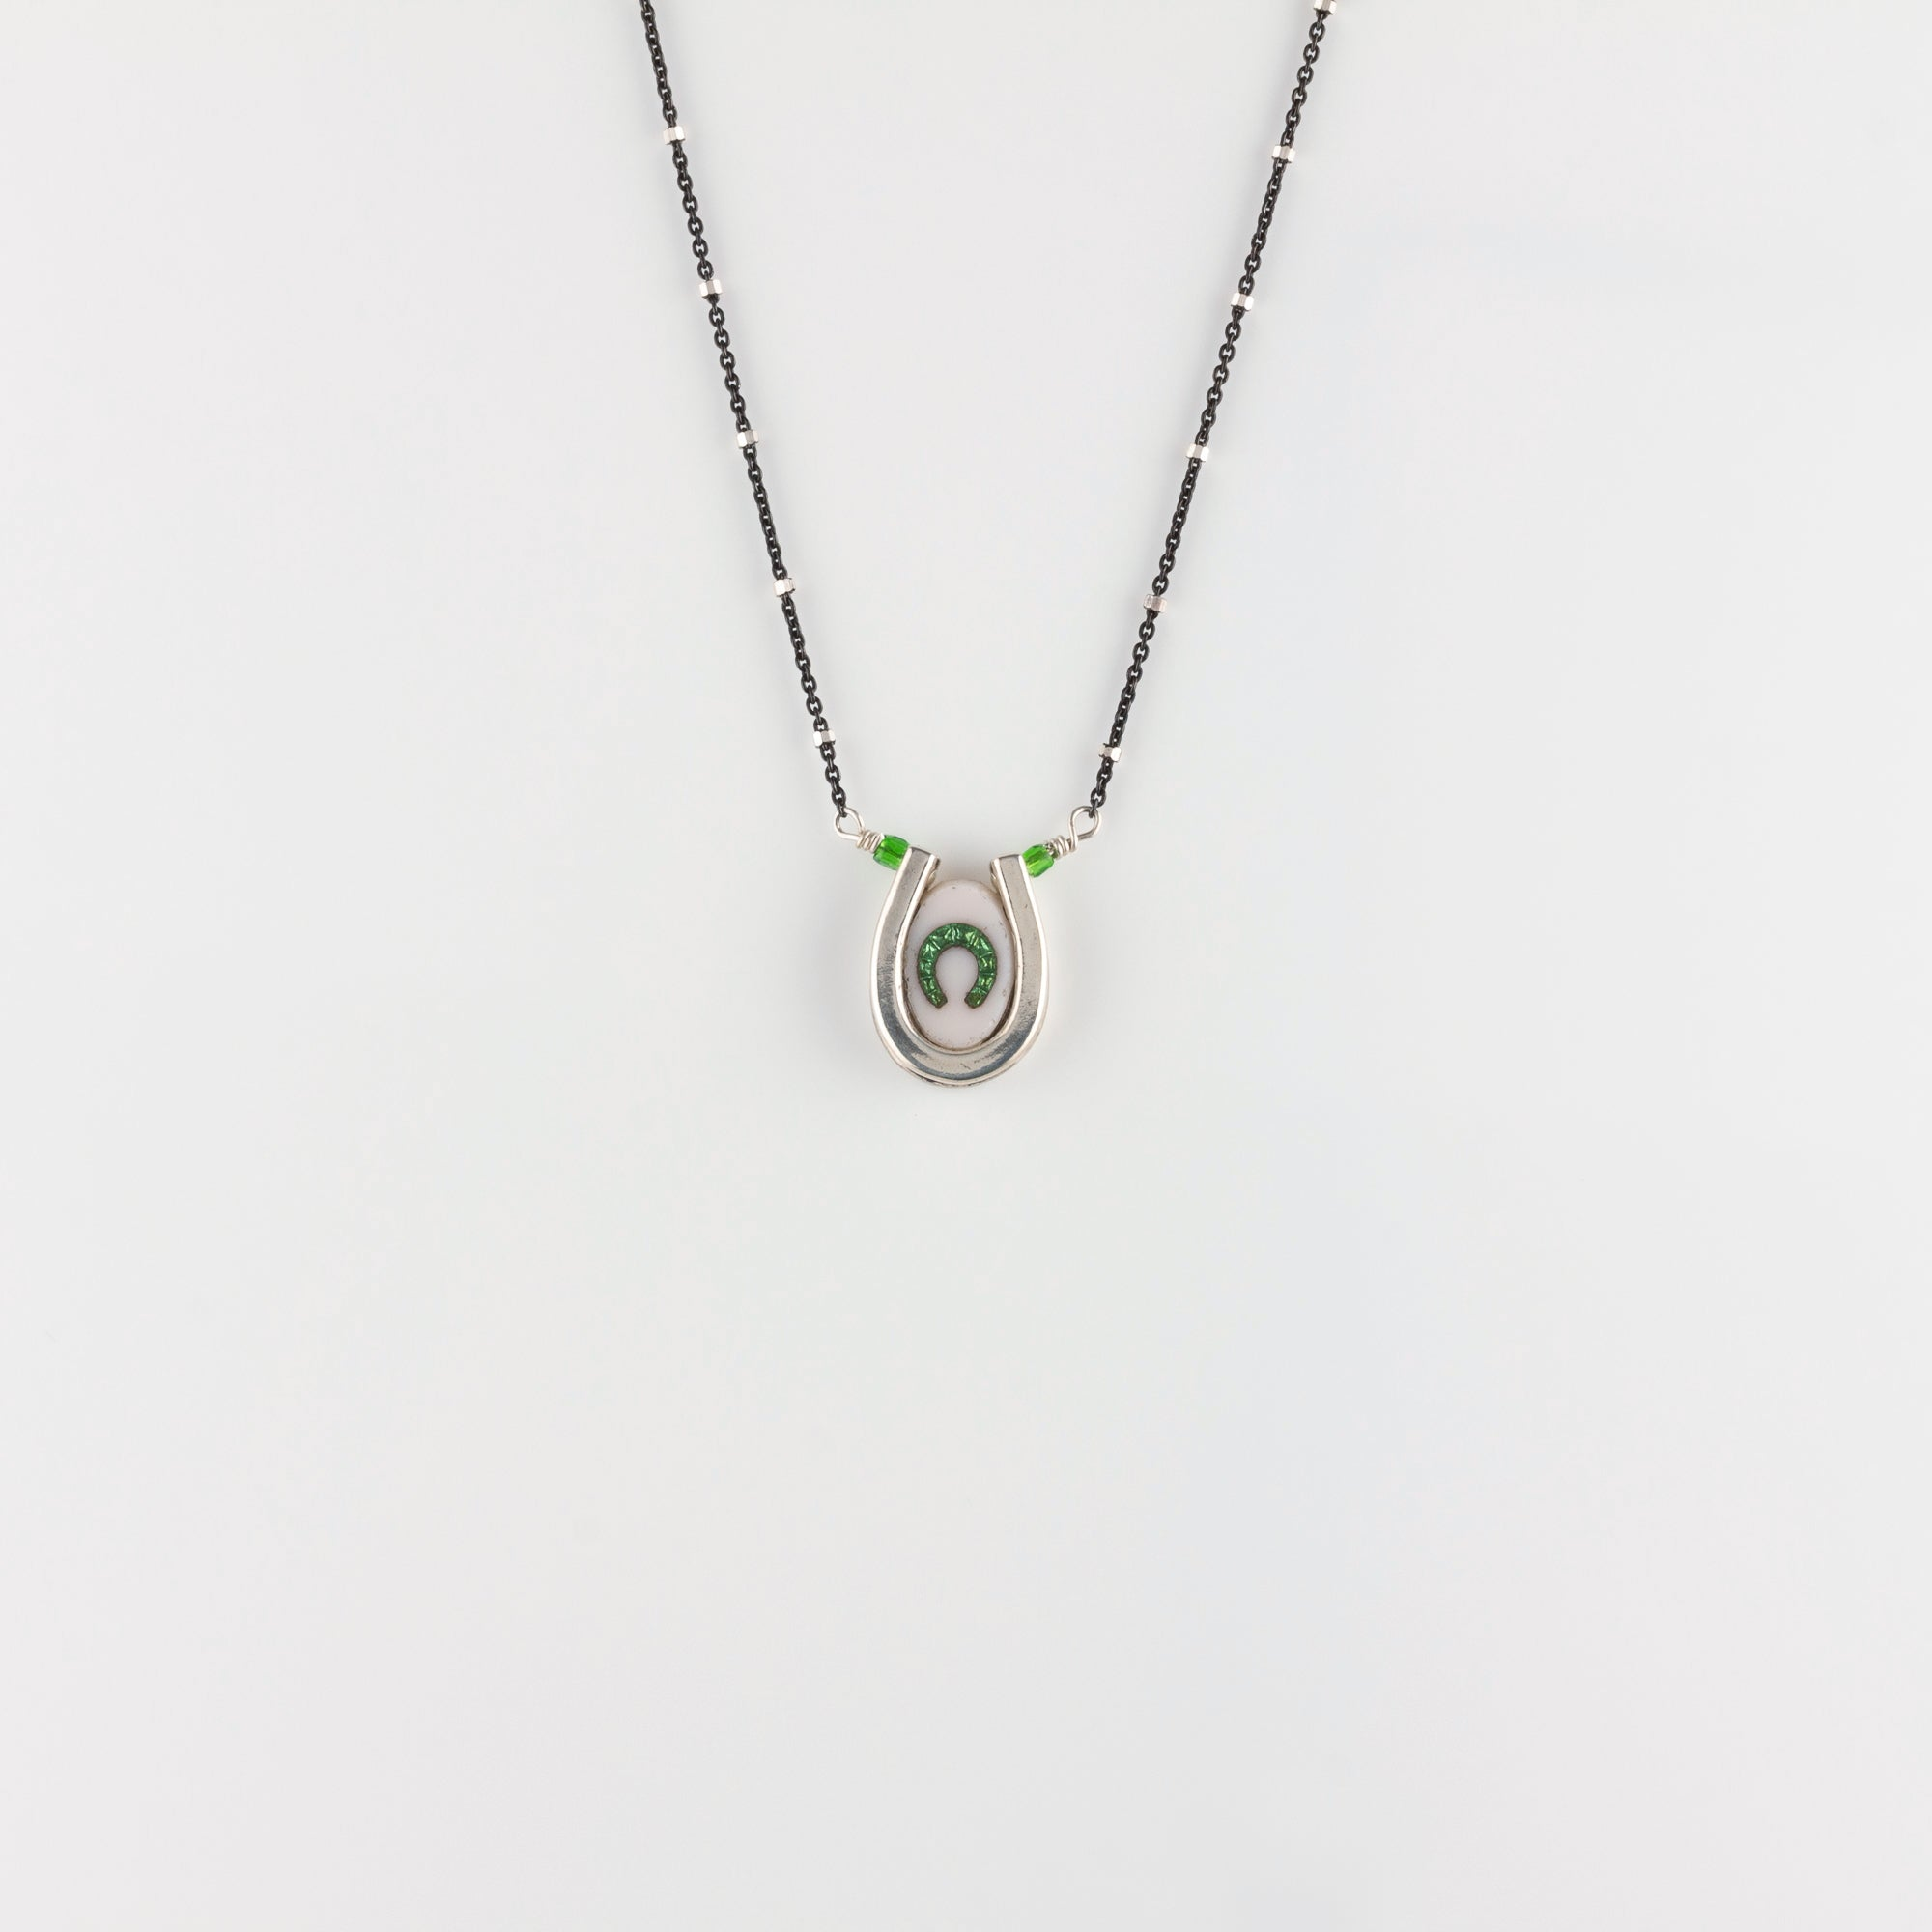 DOUBLE LUCK // SILVER NECKLACE // WHITE & GREEN